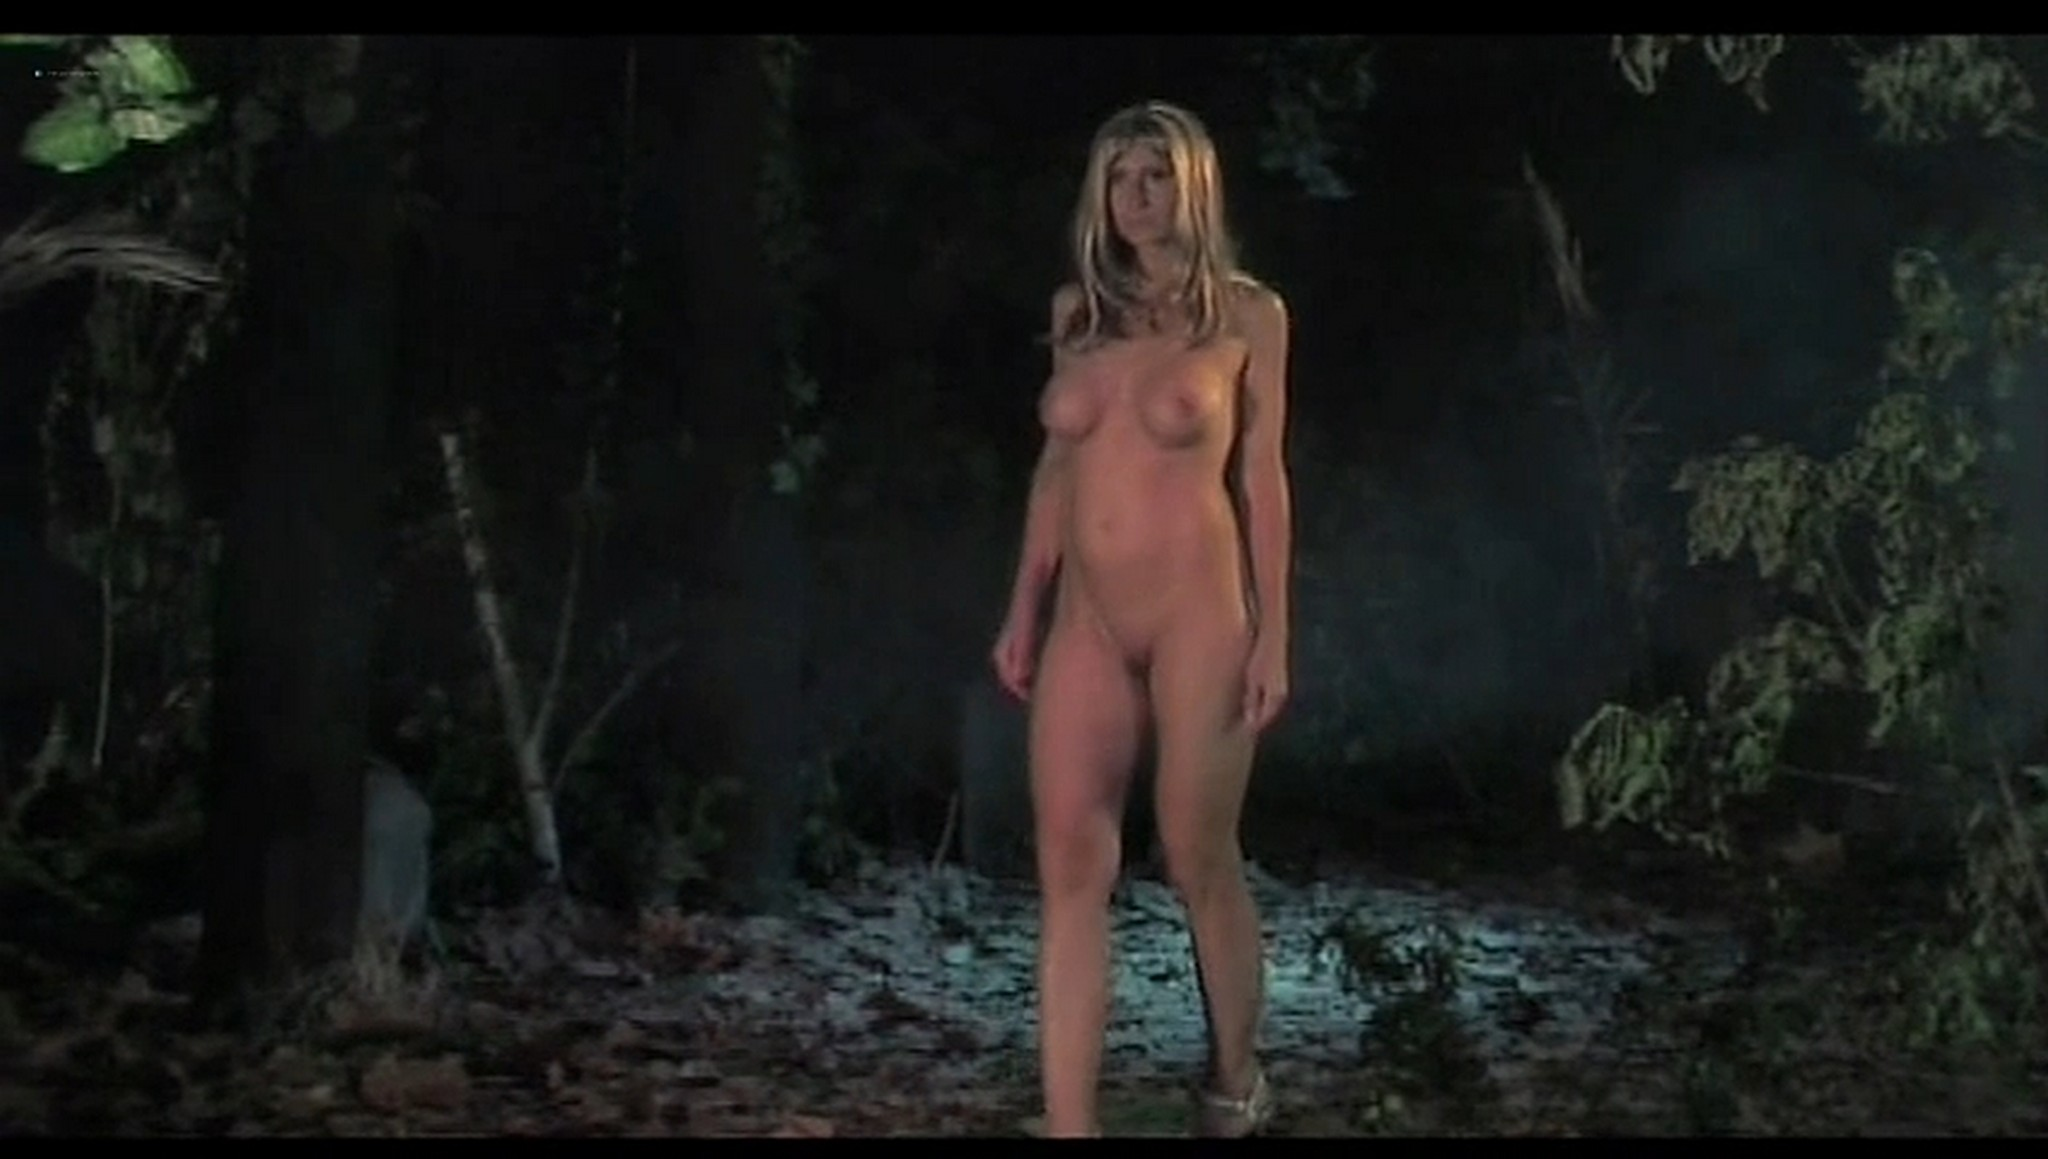 Sonja Karina nude Eliza Borecka nude labia Abducted by the Daleks 2005 13